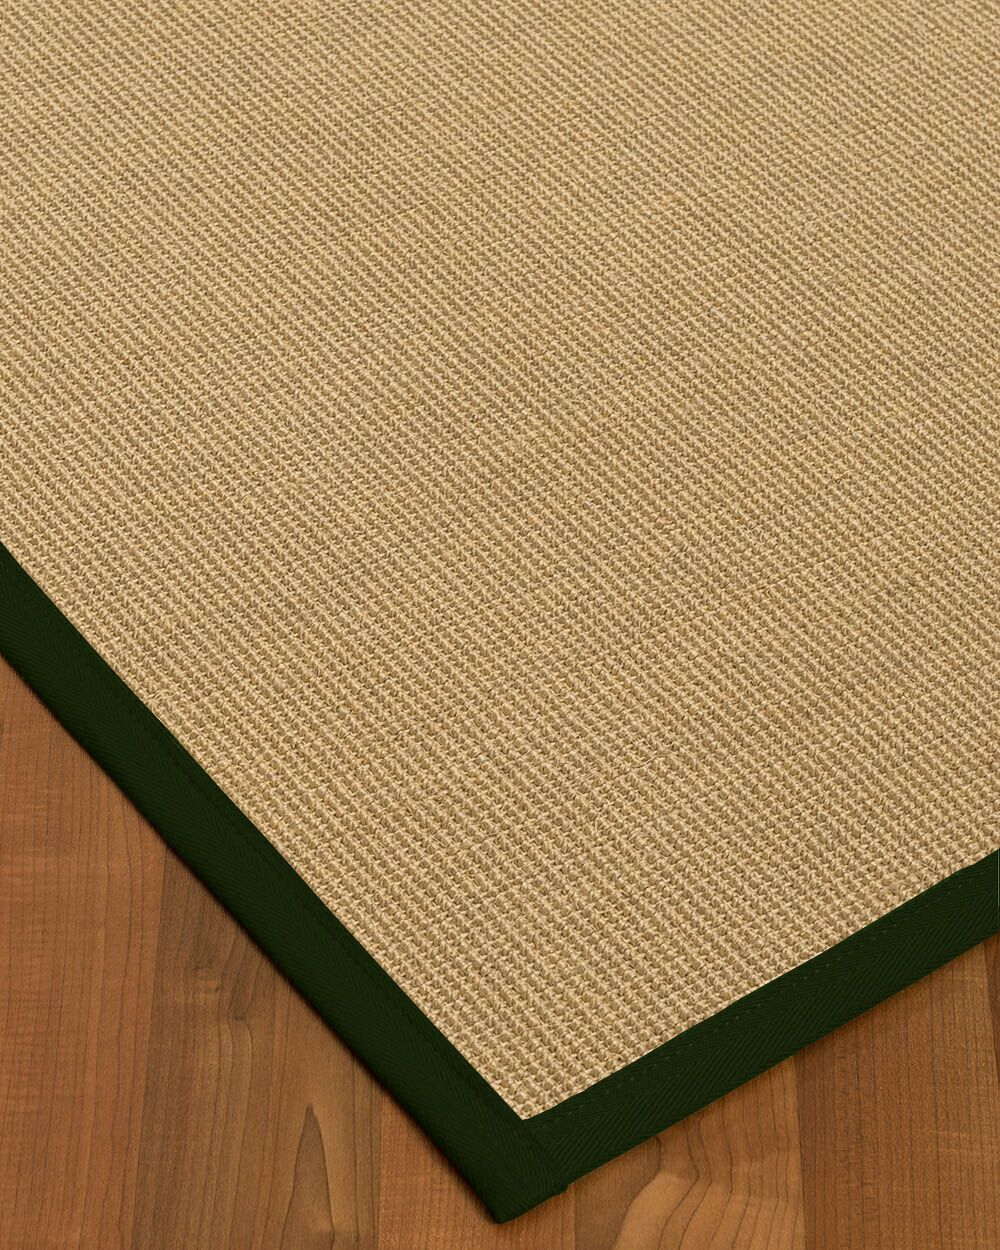 Atwell Border Hand-Woven Beige/Moss Area Rug Rug Size: Rectangle 9' x 12', Rug Pad Included: Yes